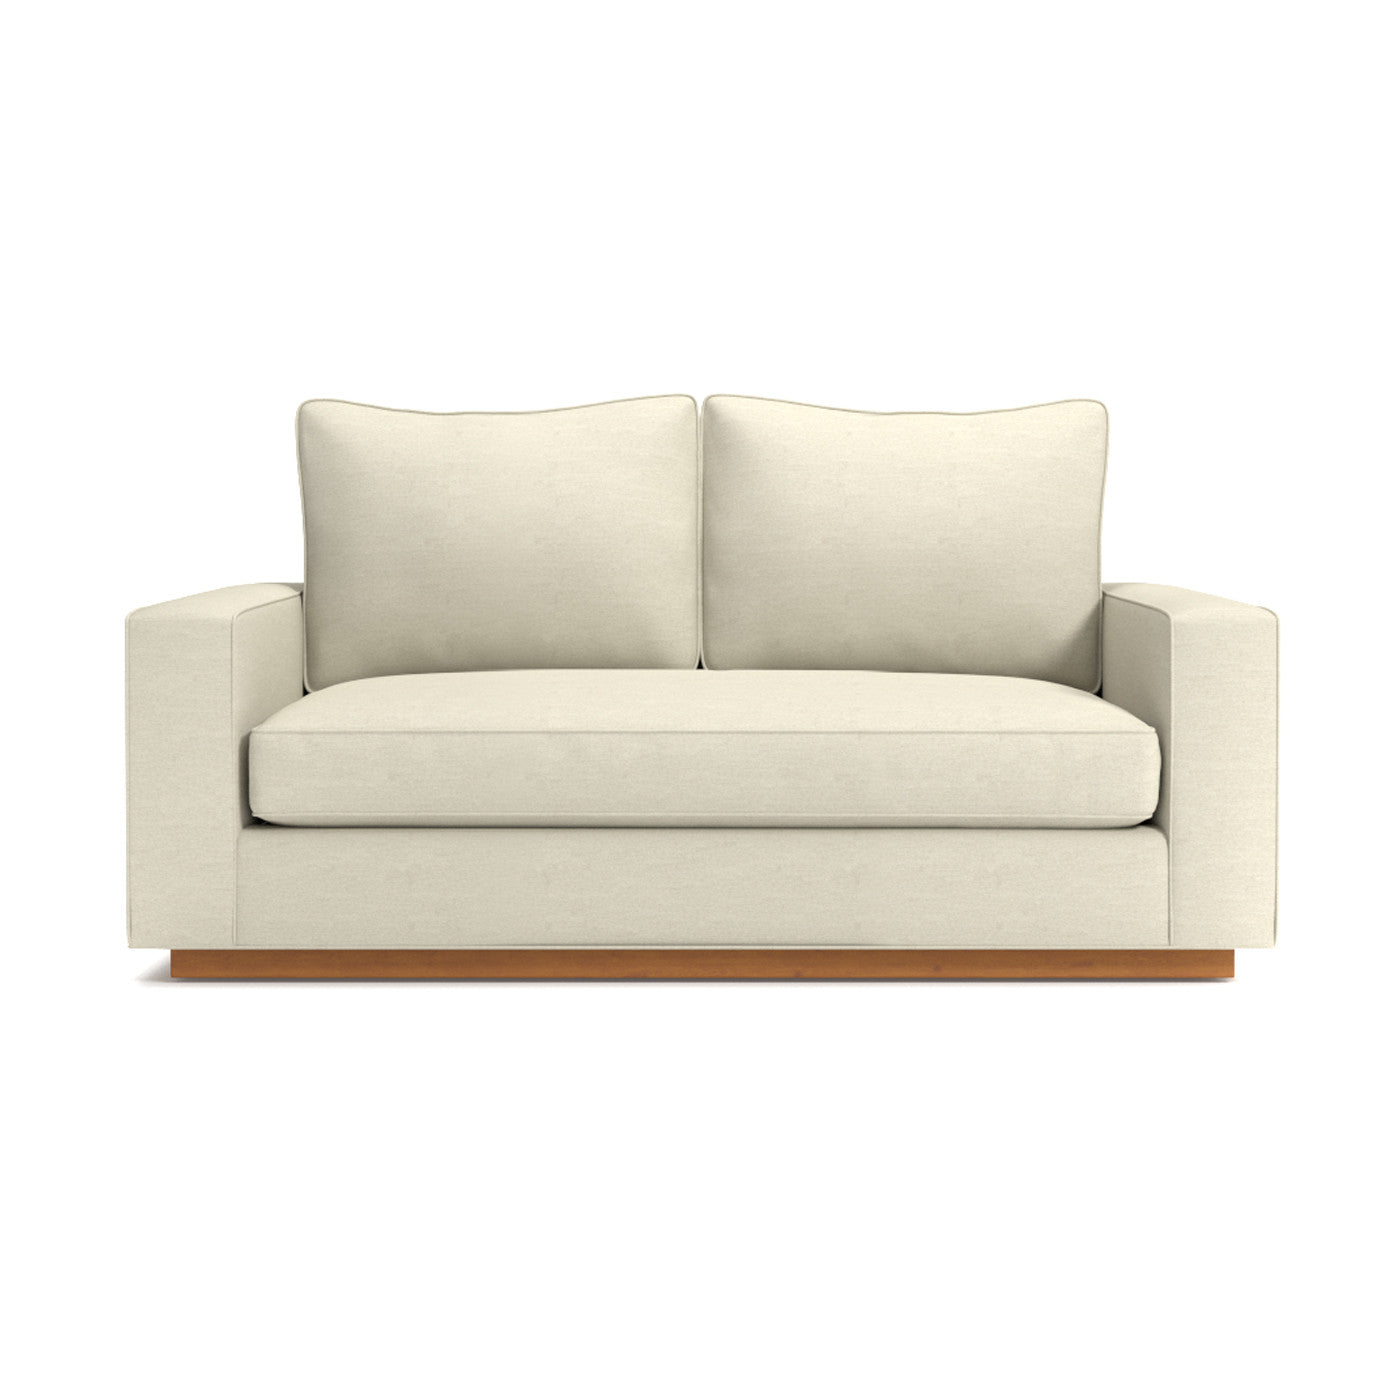 Harper Apartment Size Sofa from Kyle Schuneman CHOICE OF FABRICS